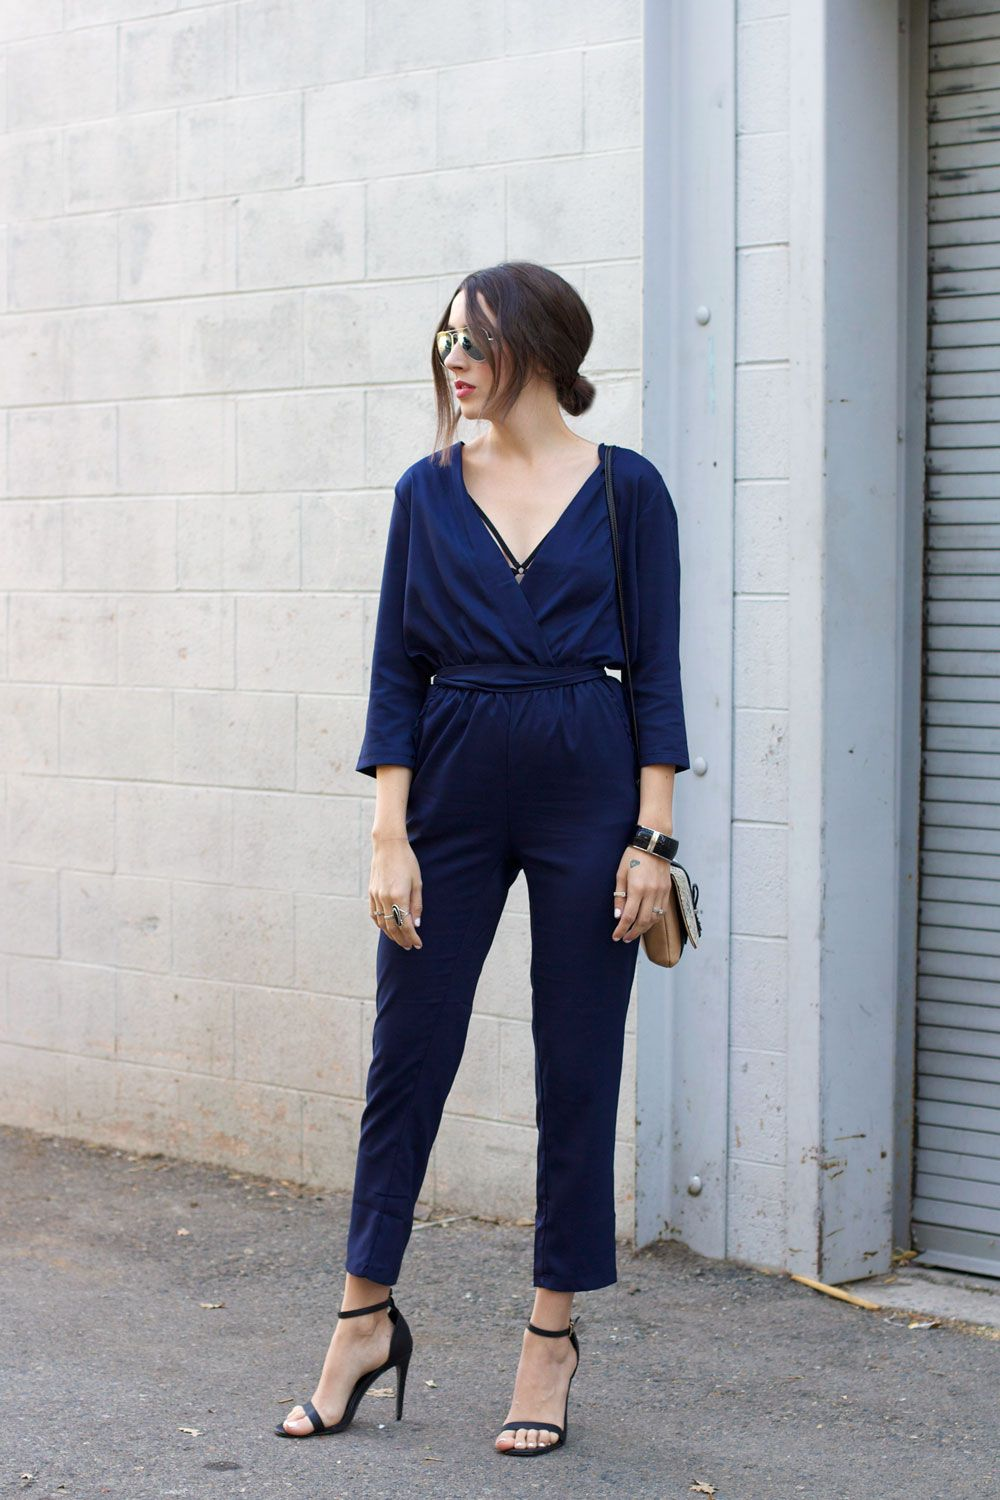 Navy Blue Jumpsuit Outfit Fashion Pinterest Outfits Jumpsuit